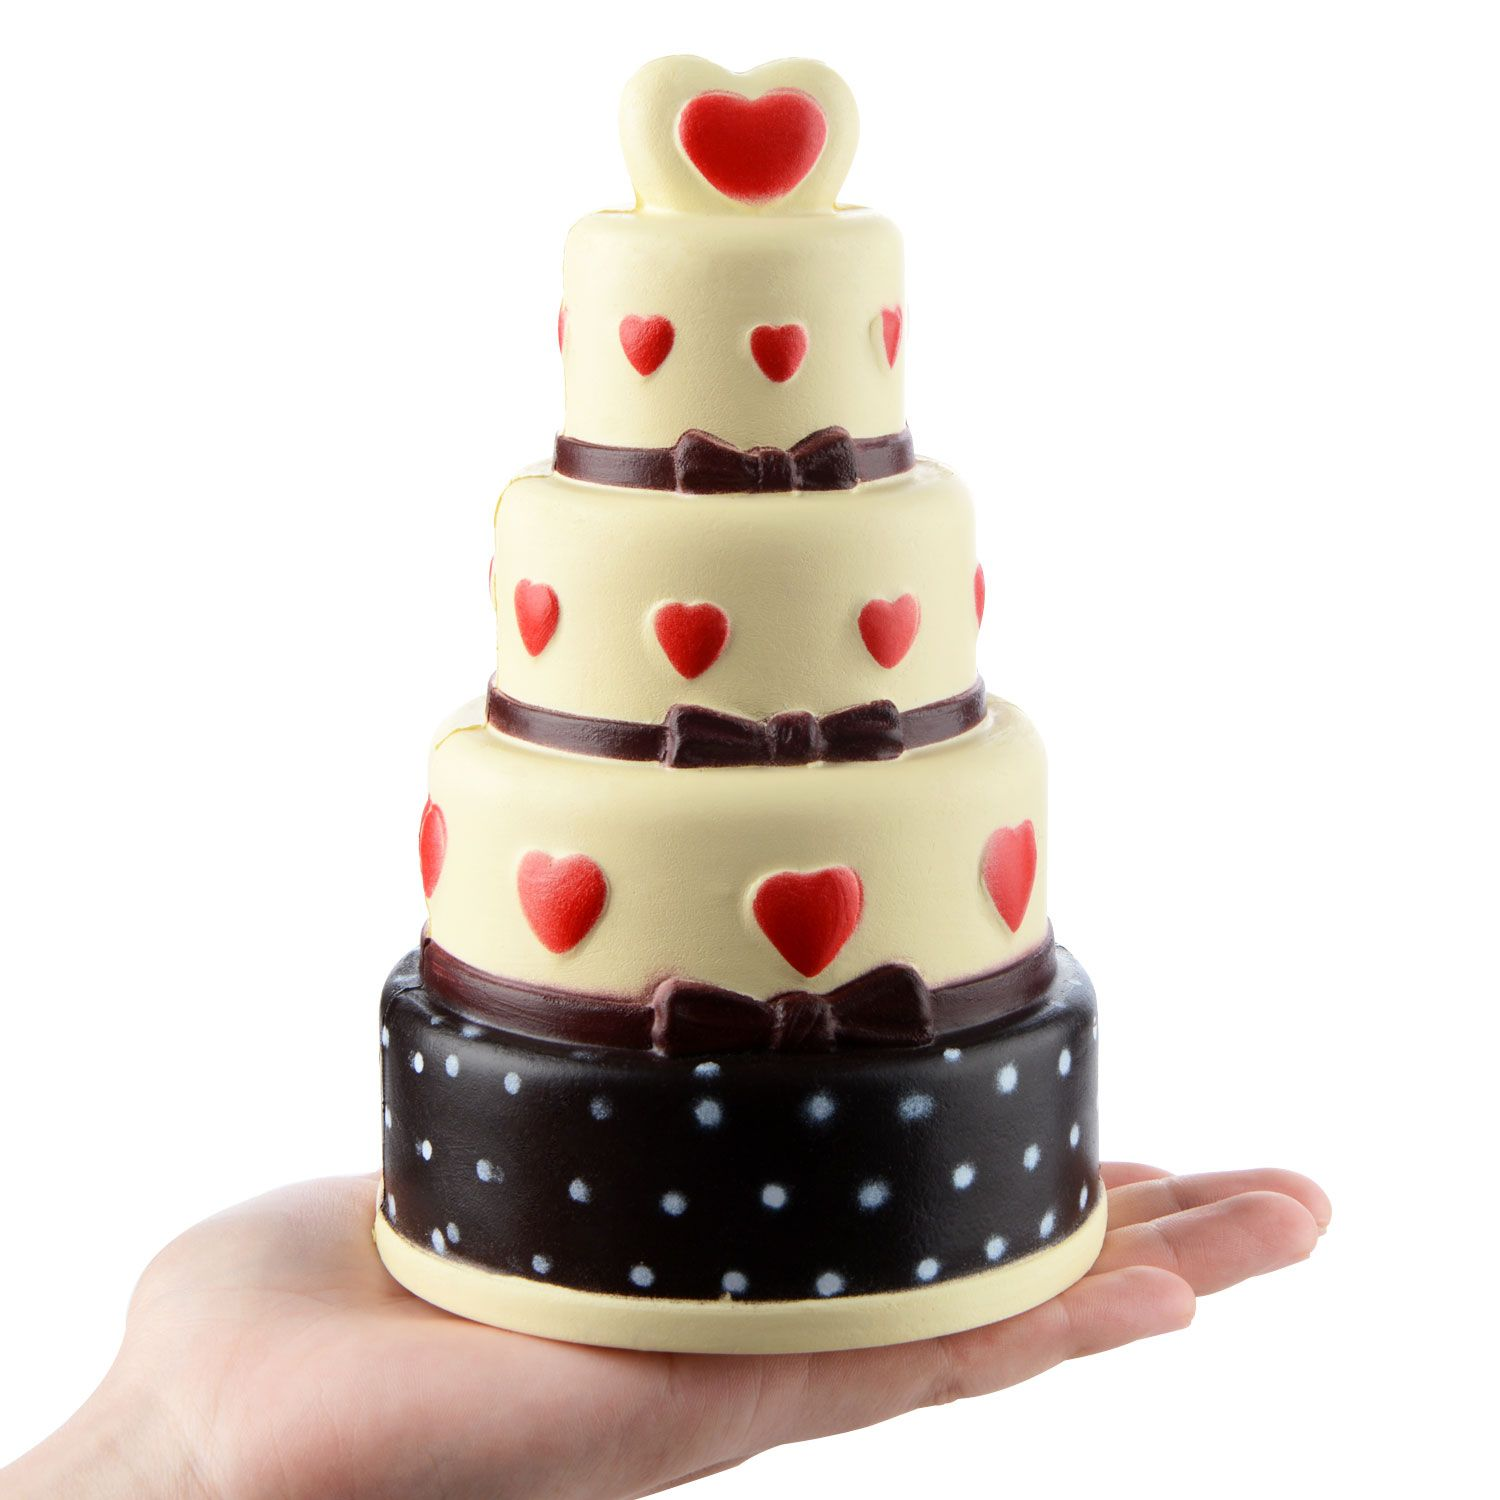 18CM Jumbo 4 Layer Red Heart Cake Squishy Toy Cakes Slow Rising Chocolate Cake Kids Doll Decor Squeeze Fun Joke Props Gift